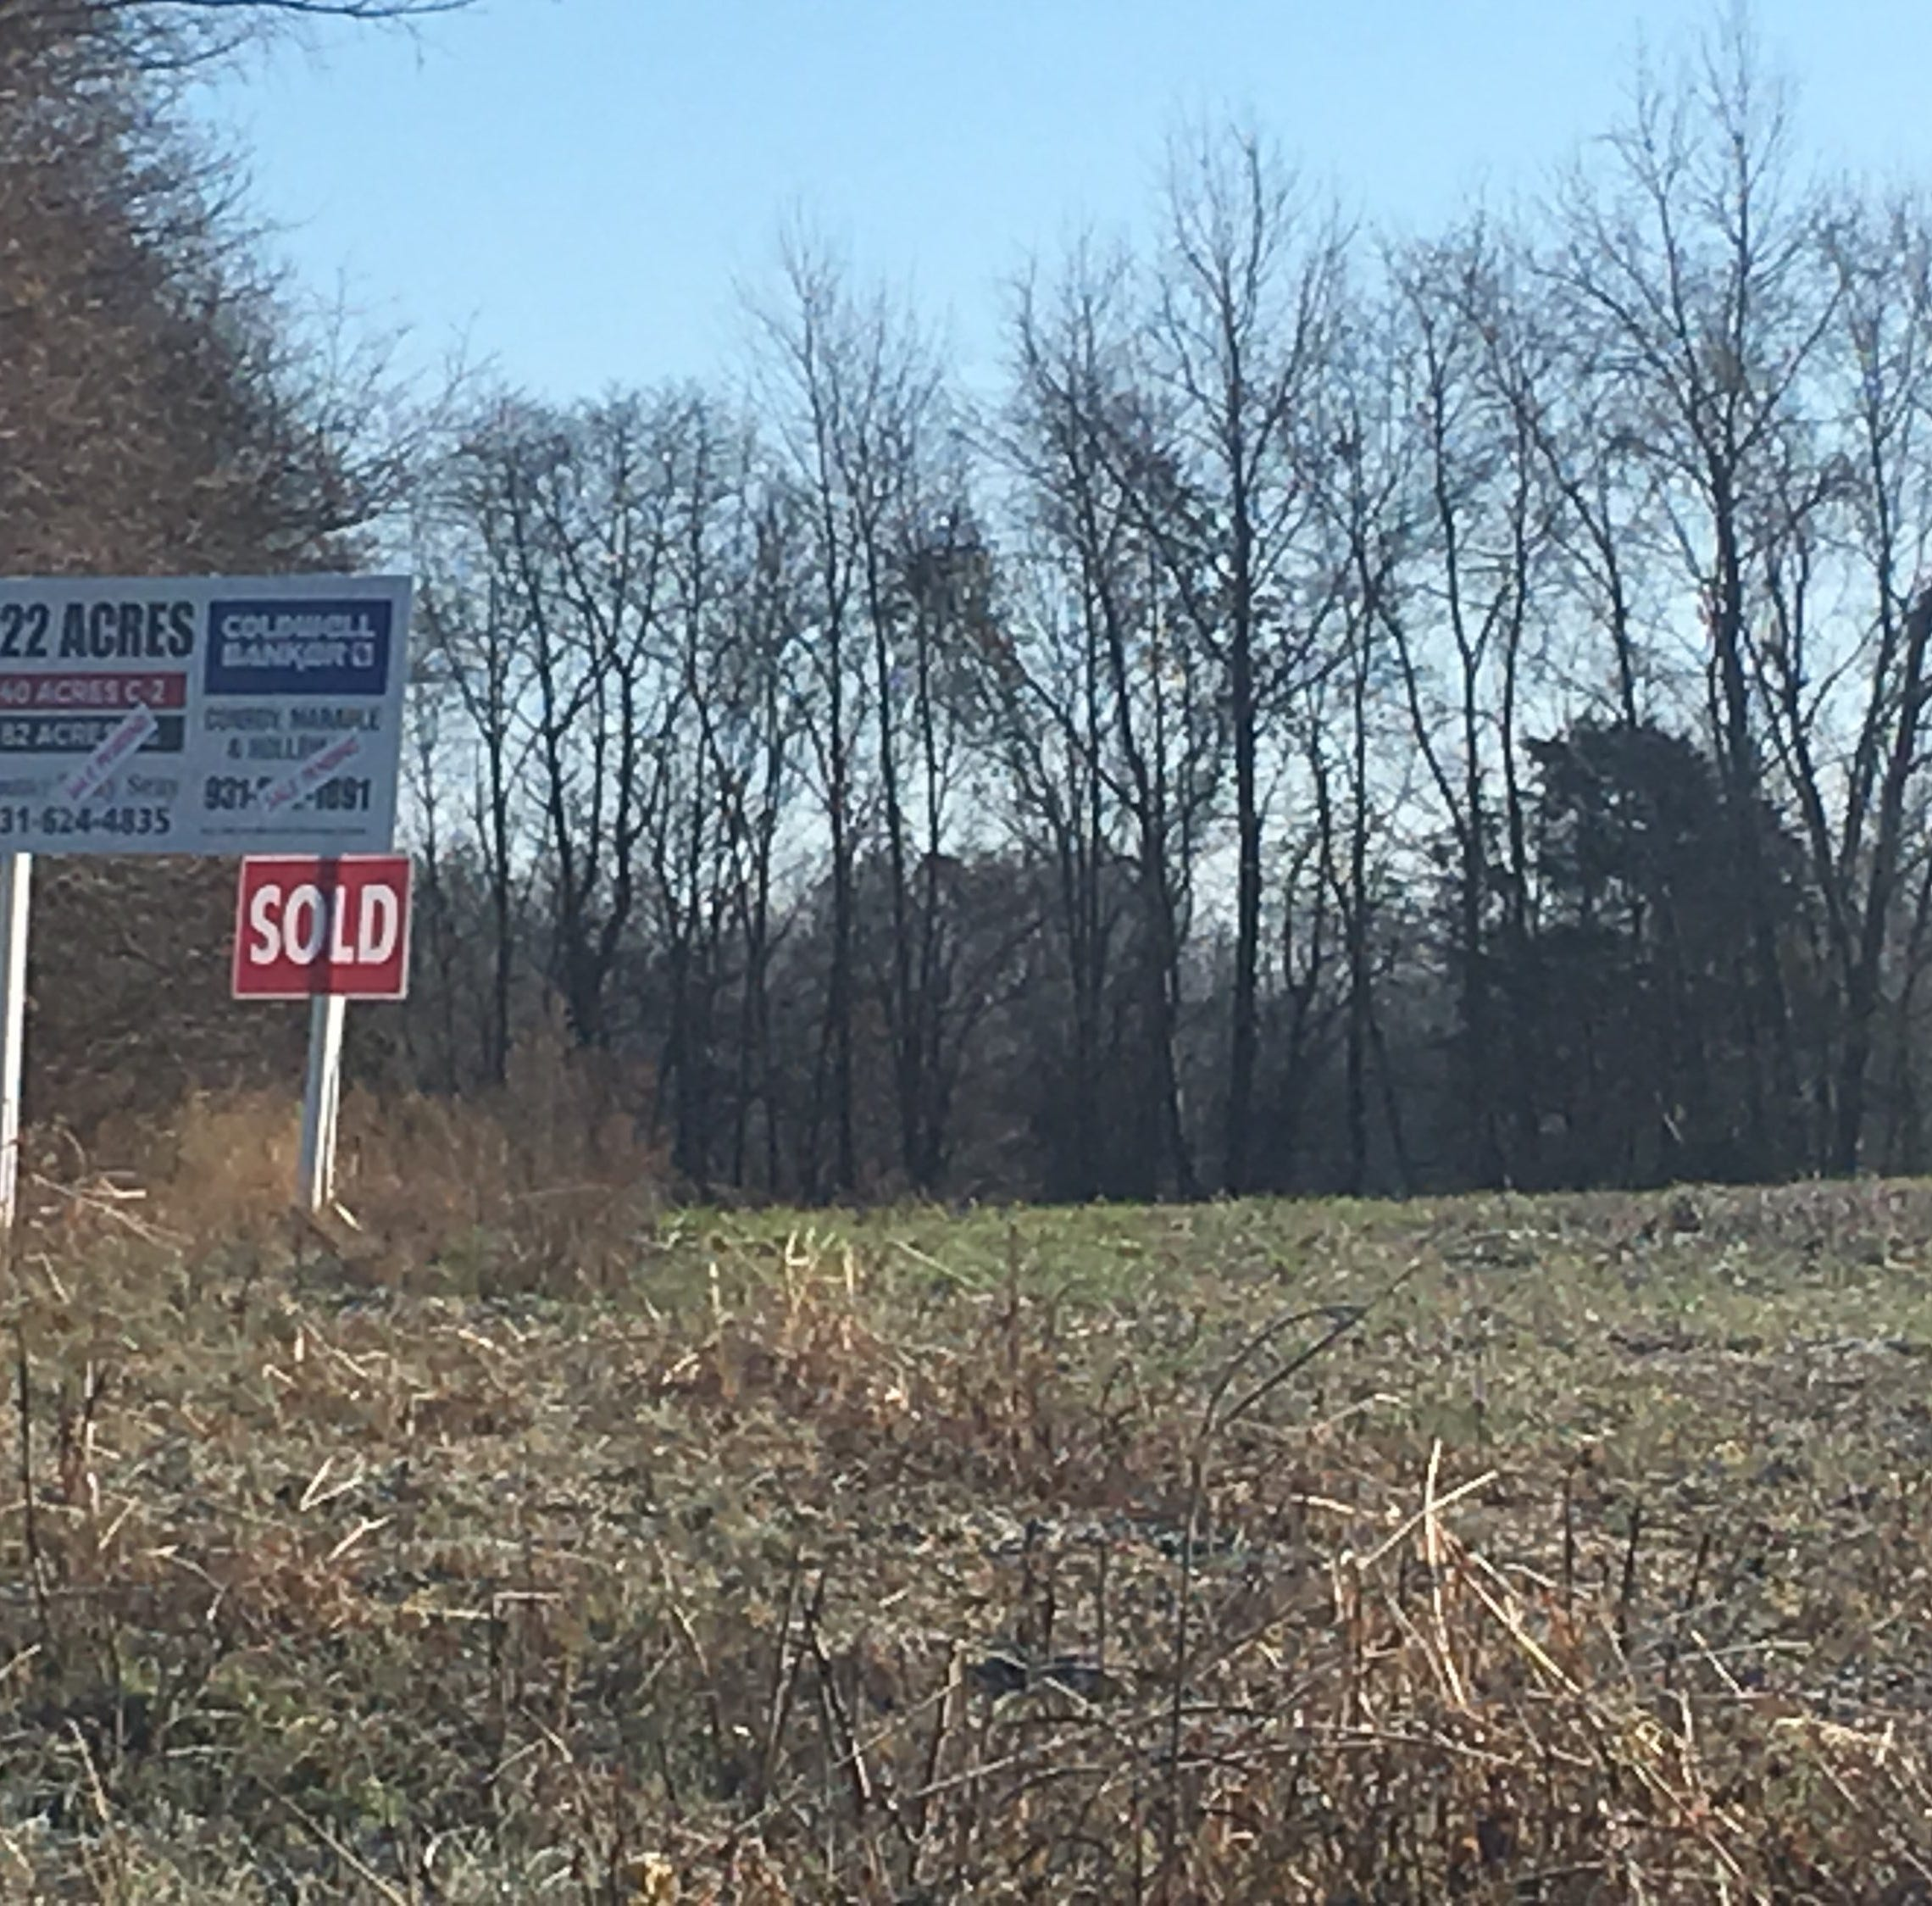 Controversial rezoning near Exit 11 likely nullified by pending land sale